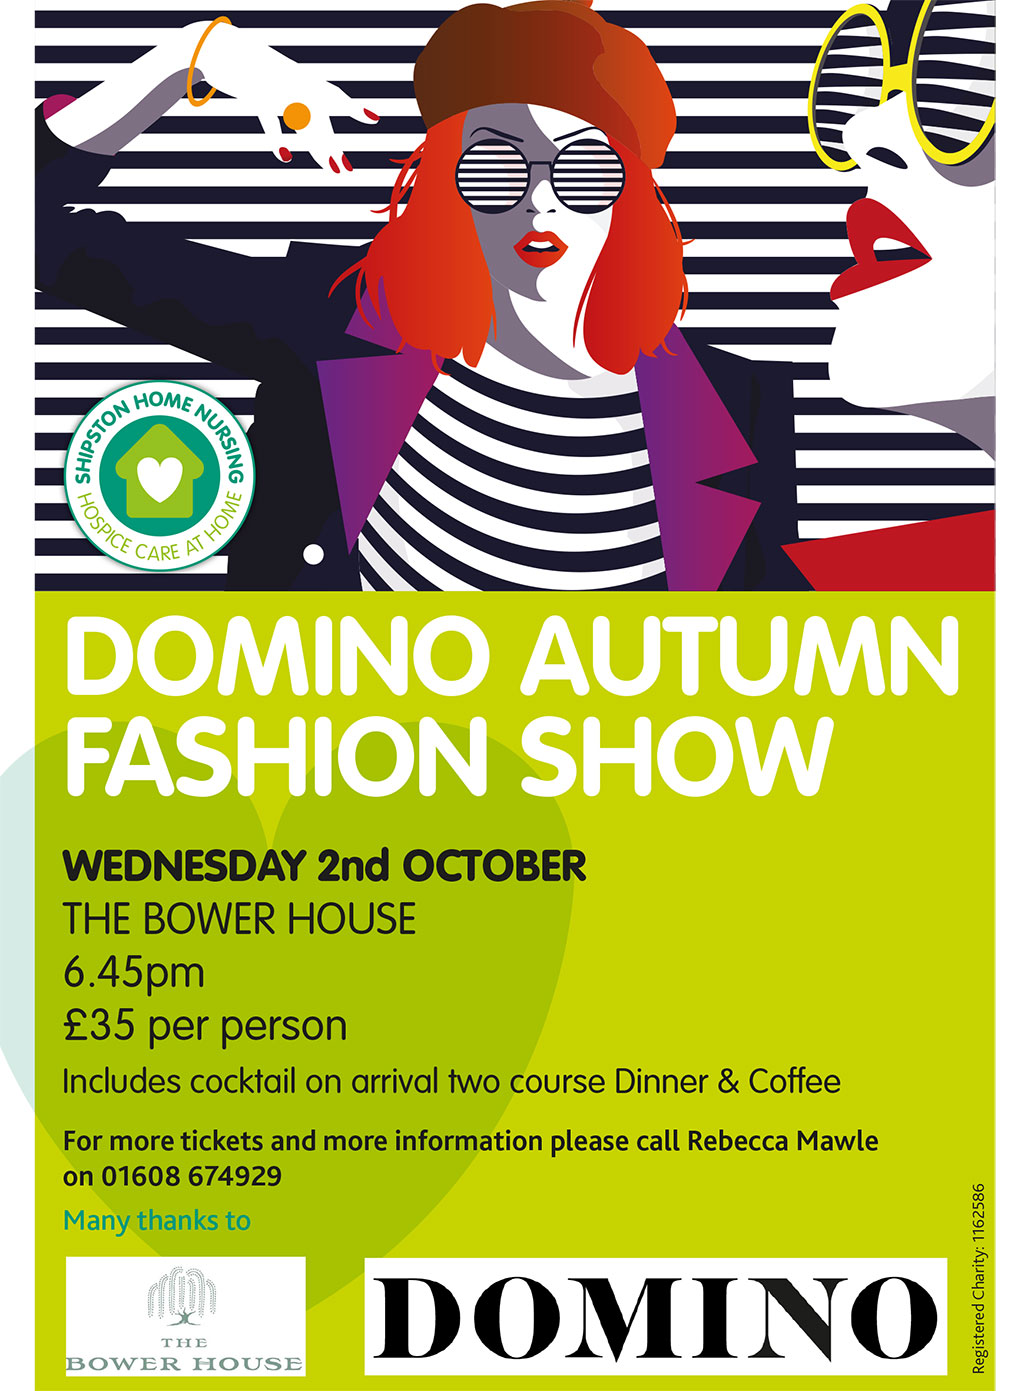 Domino Fashion Show for Shipston Home Nursing